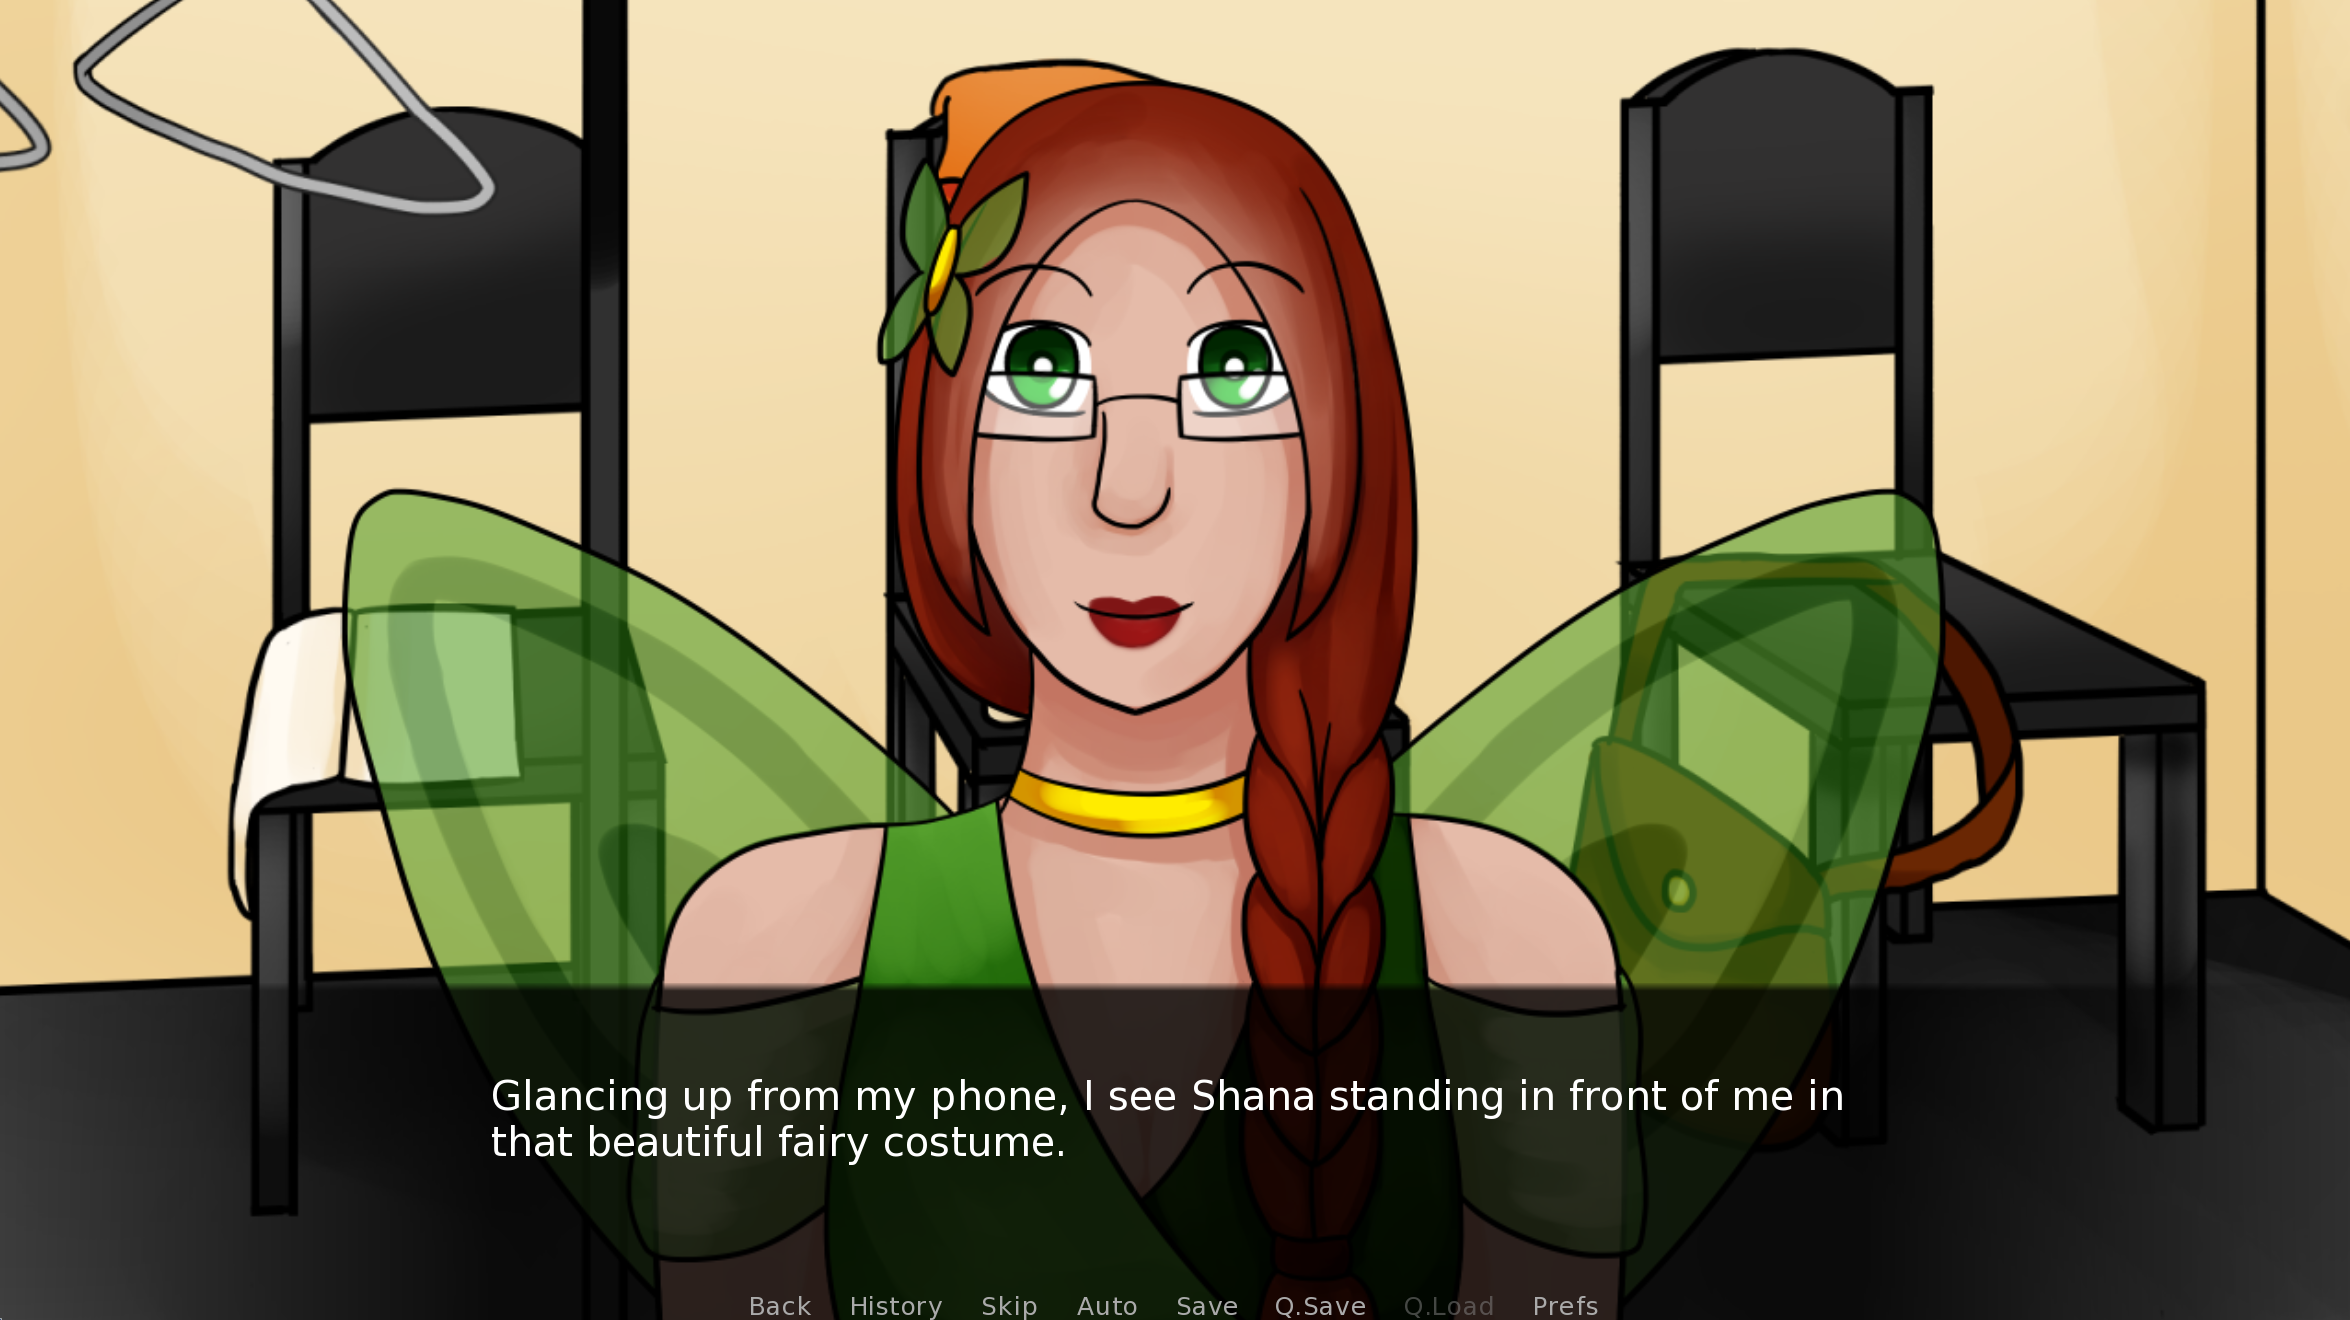 A femme looking person wearing fairy wings. Dialogue reads 'Glancing up from my phone, I see Shana standing in front of me in that beautiful fairy costume.'.